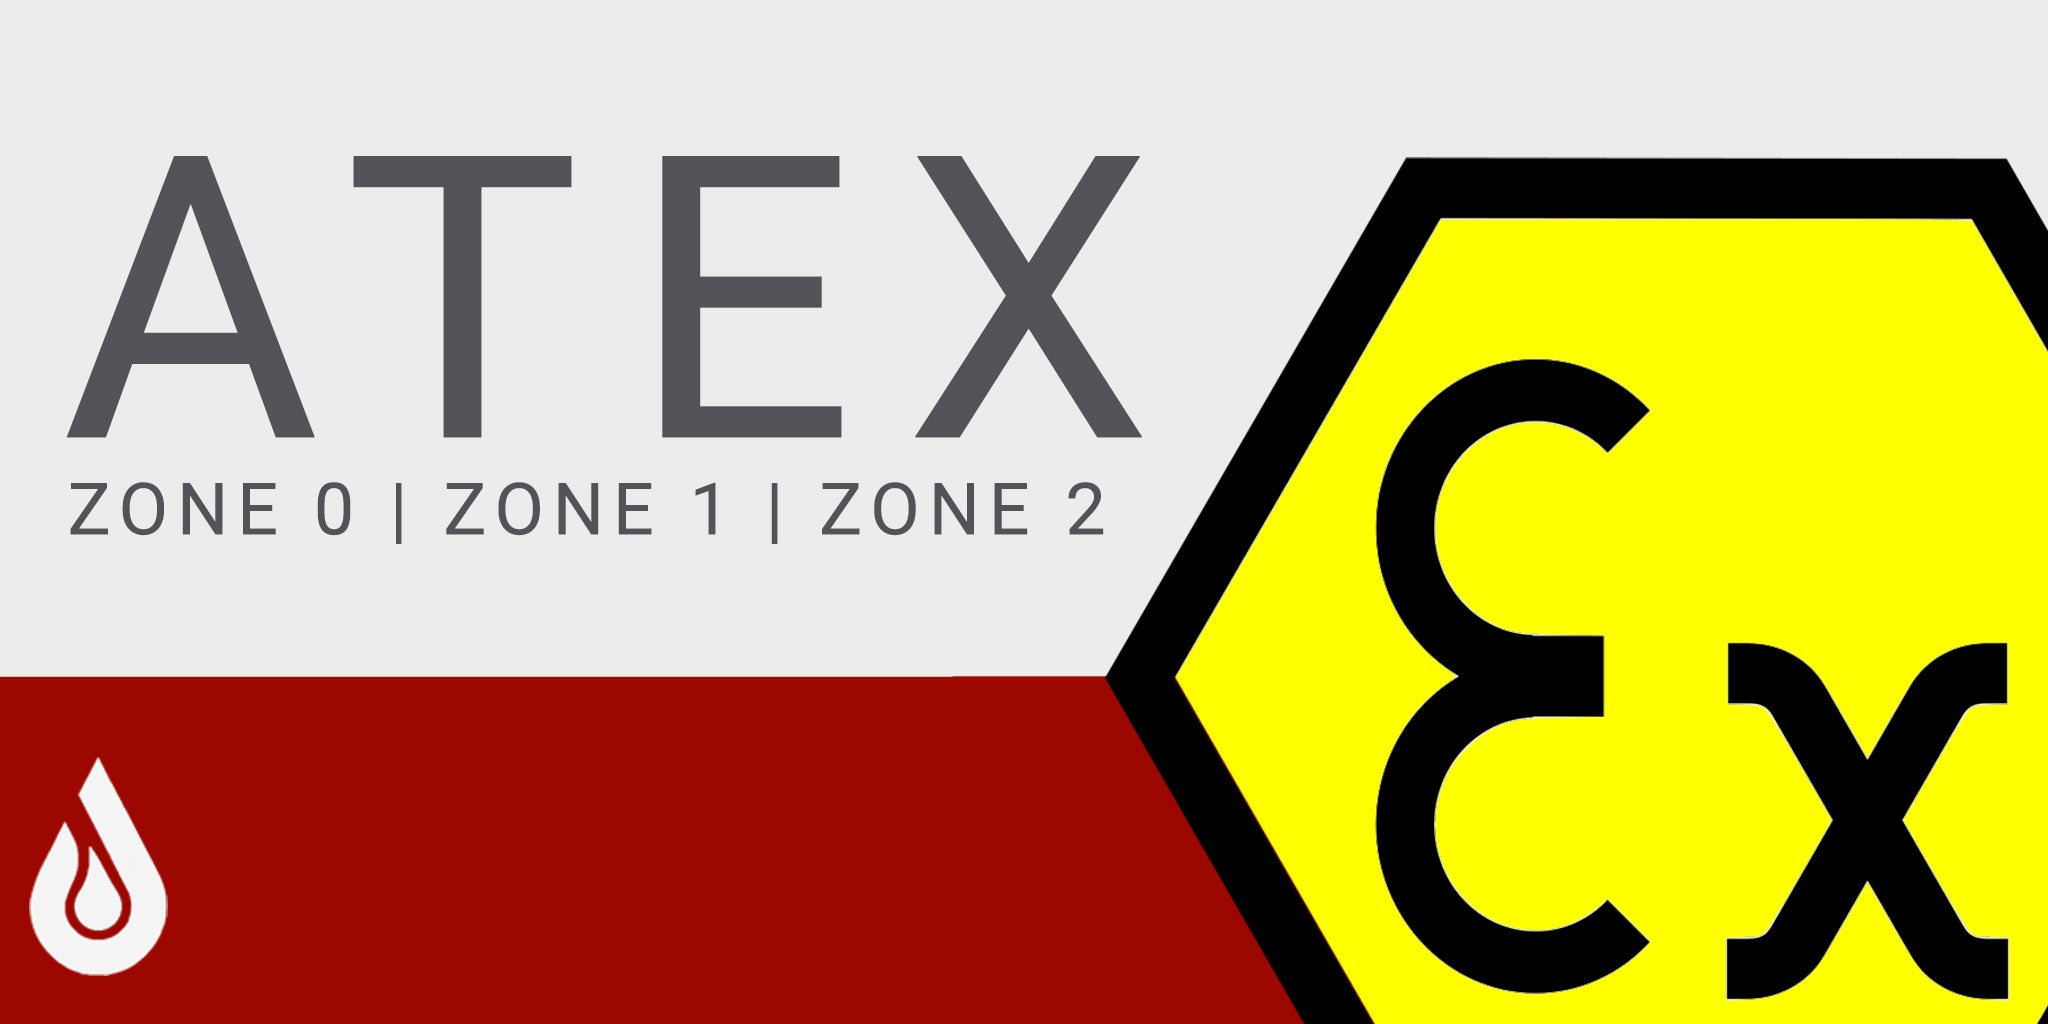 ATEX Exd Rated